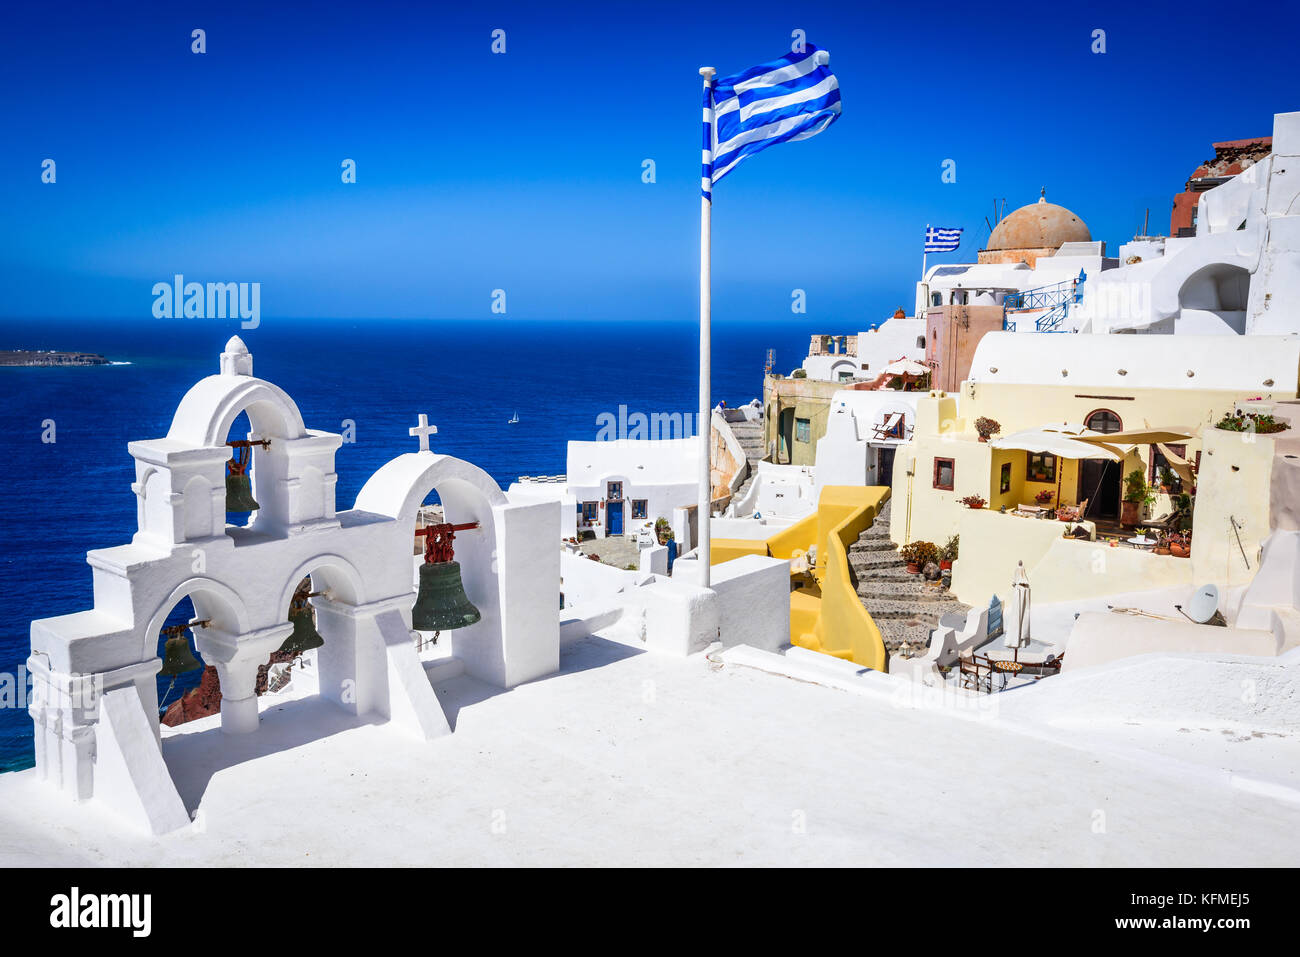 Santorini, Greece. Famous attraction of white Oia city, Greek Cyclades Islands, Aegean Sea. - Stock Image